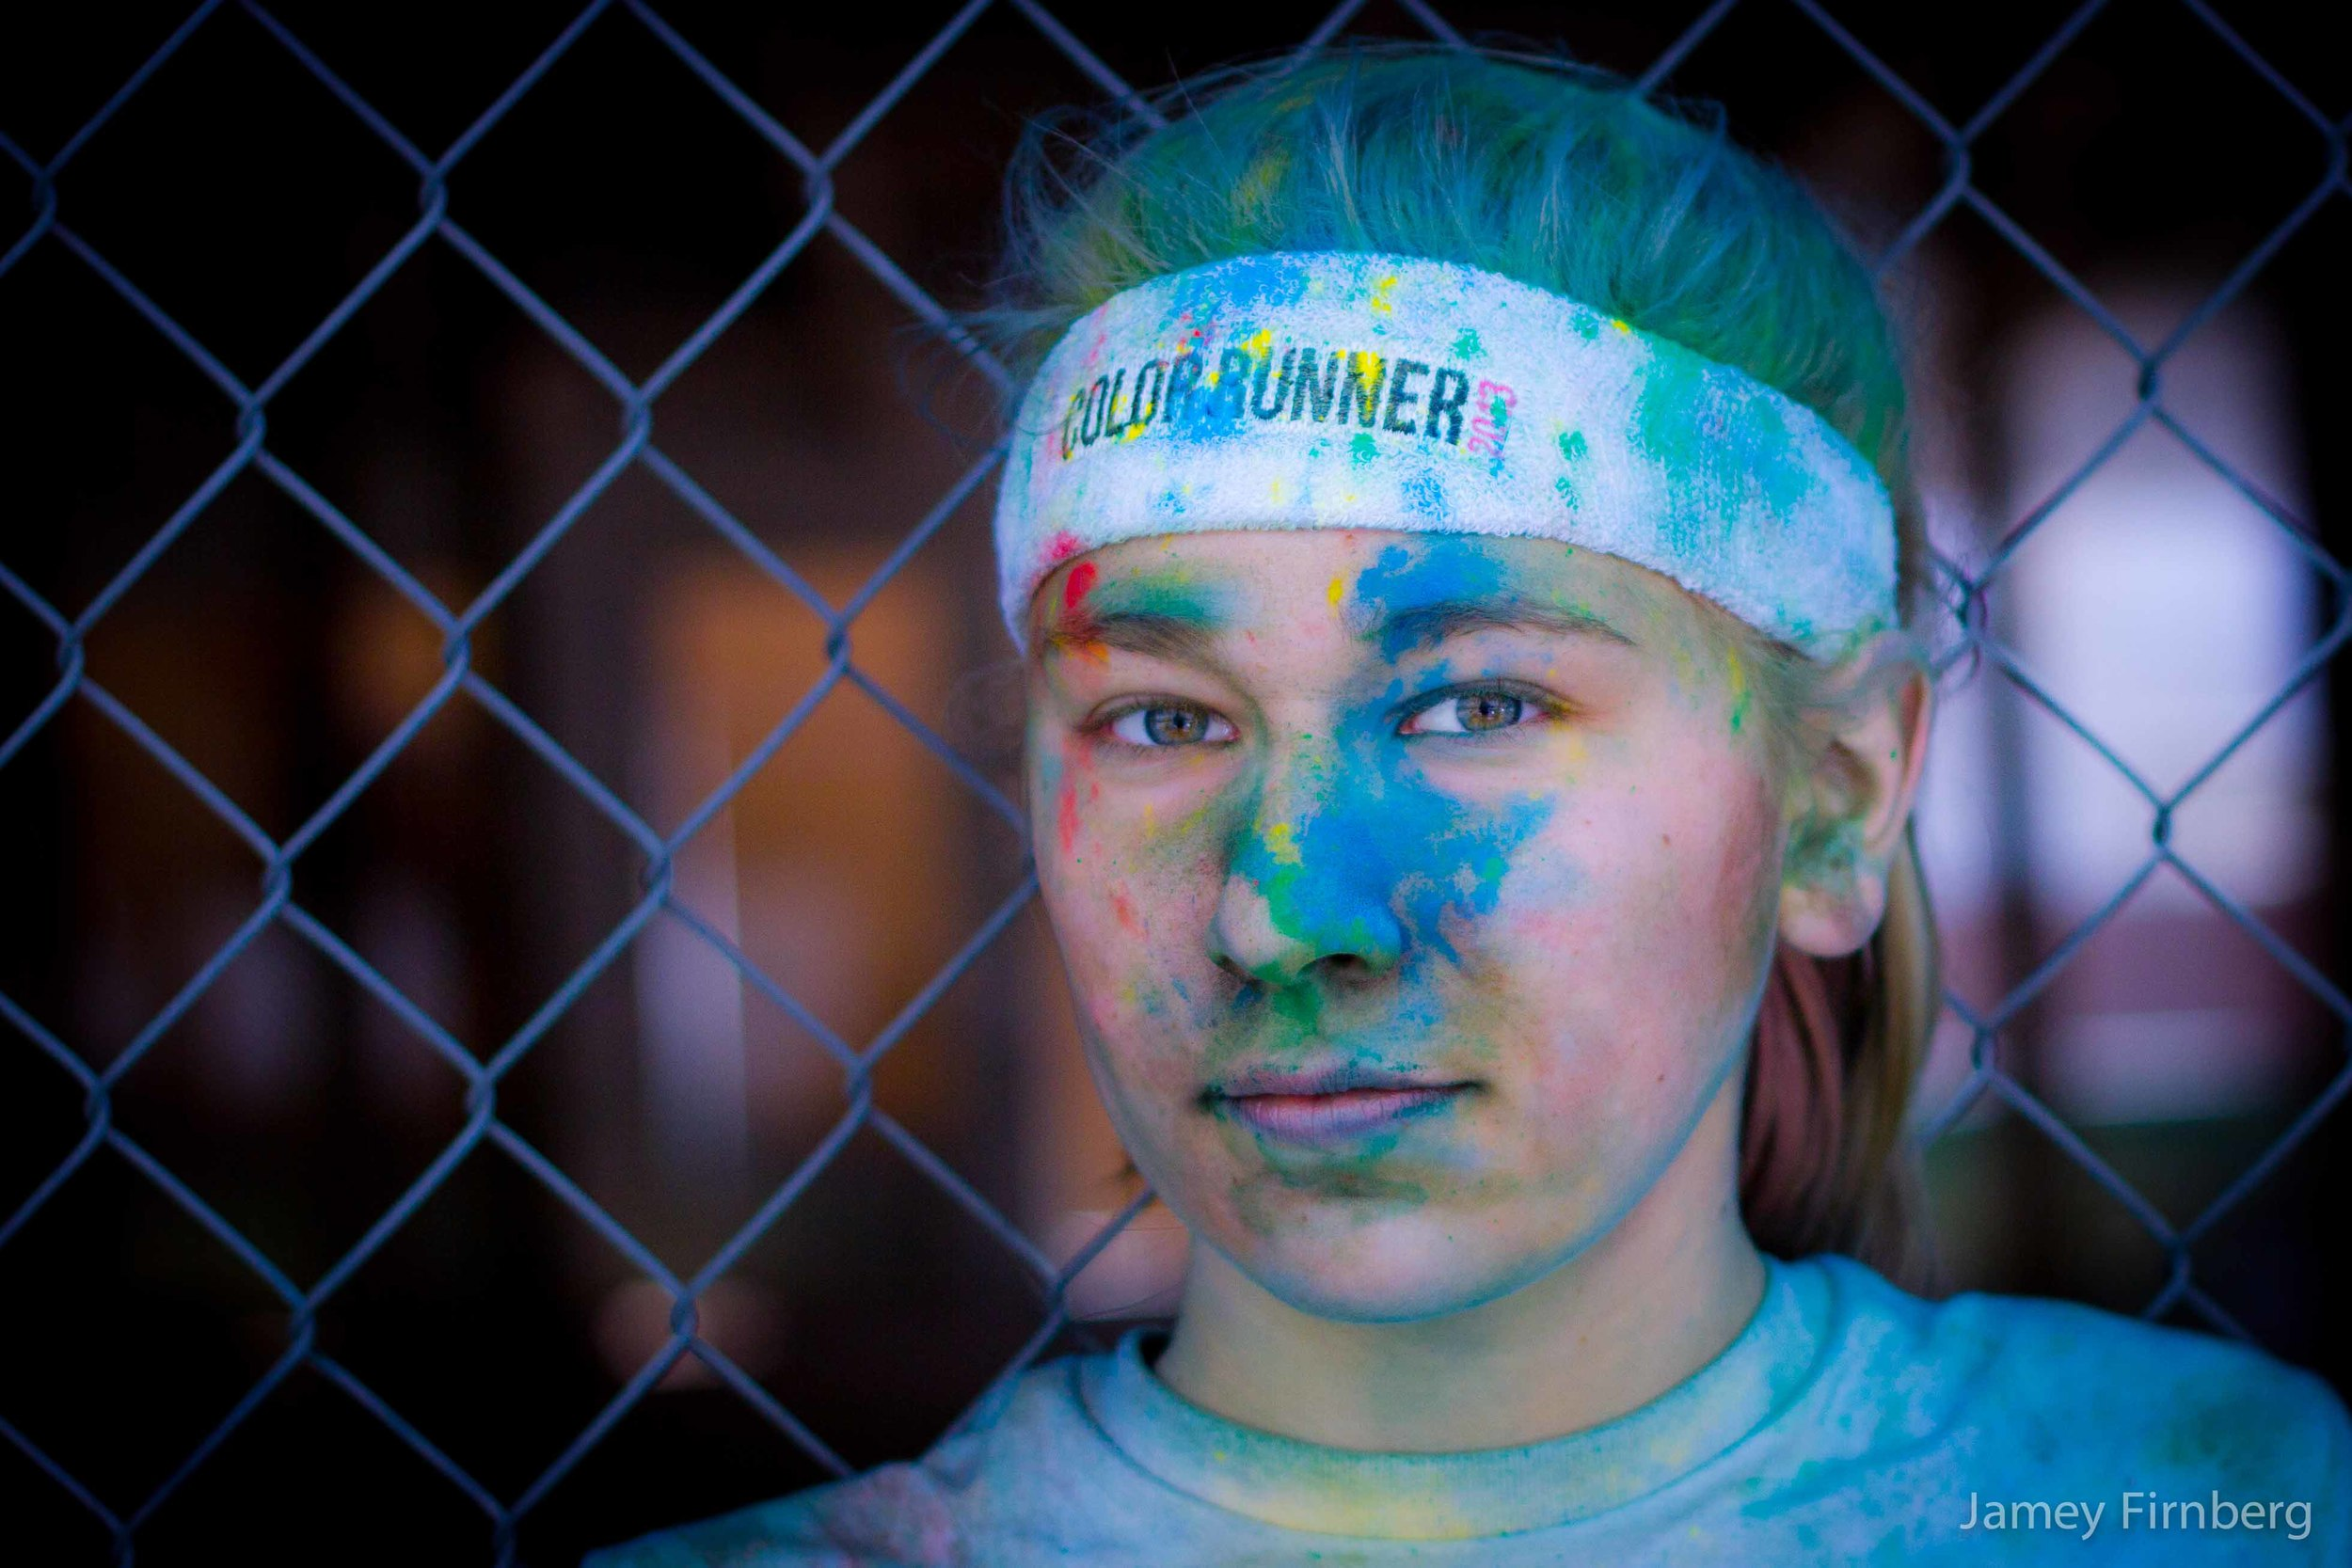 Color Runner Green.jpg